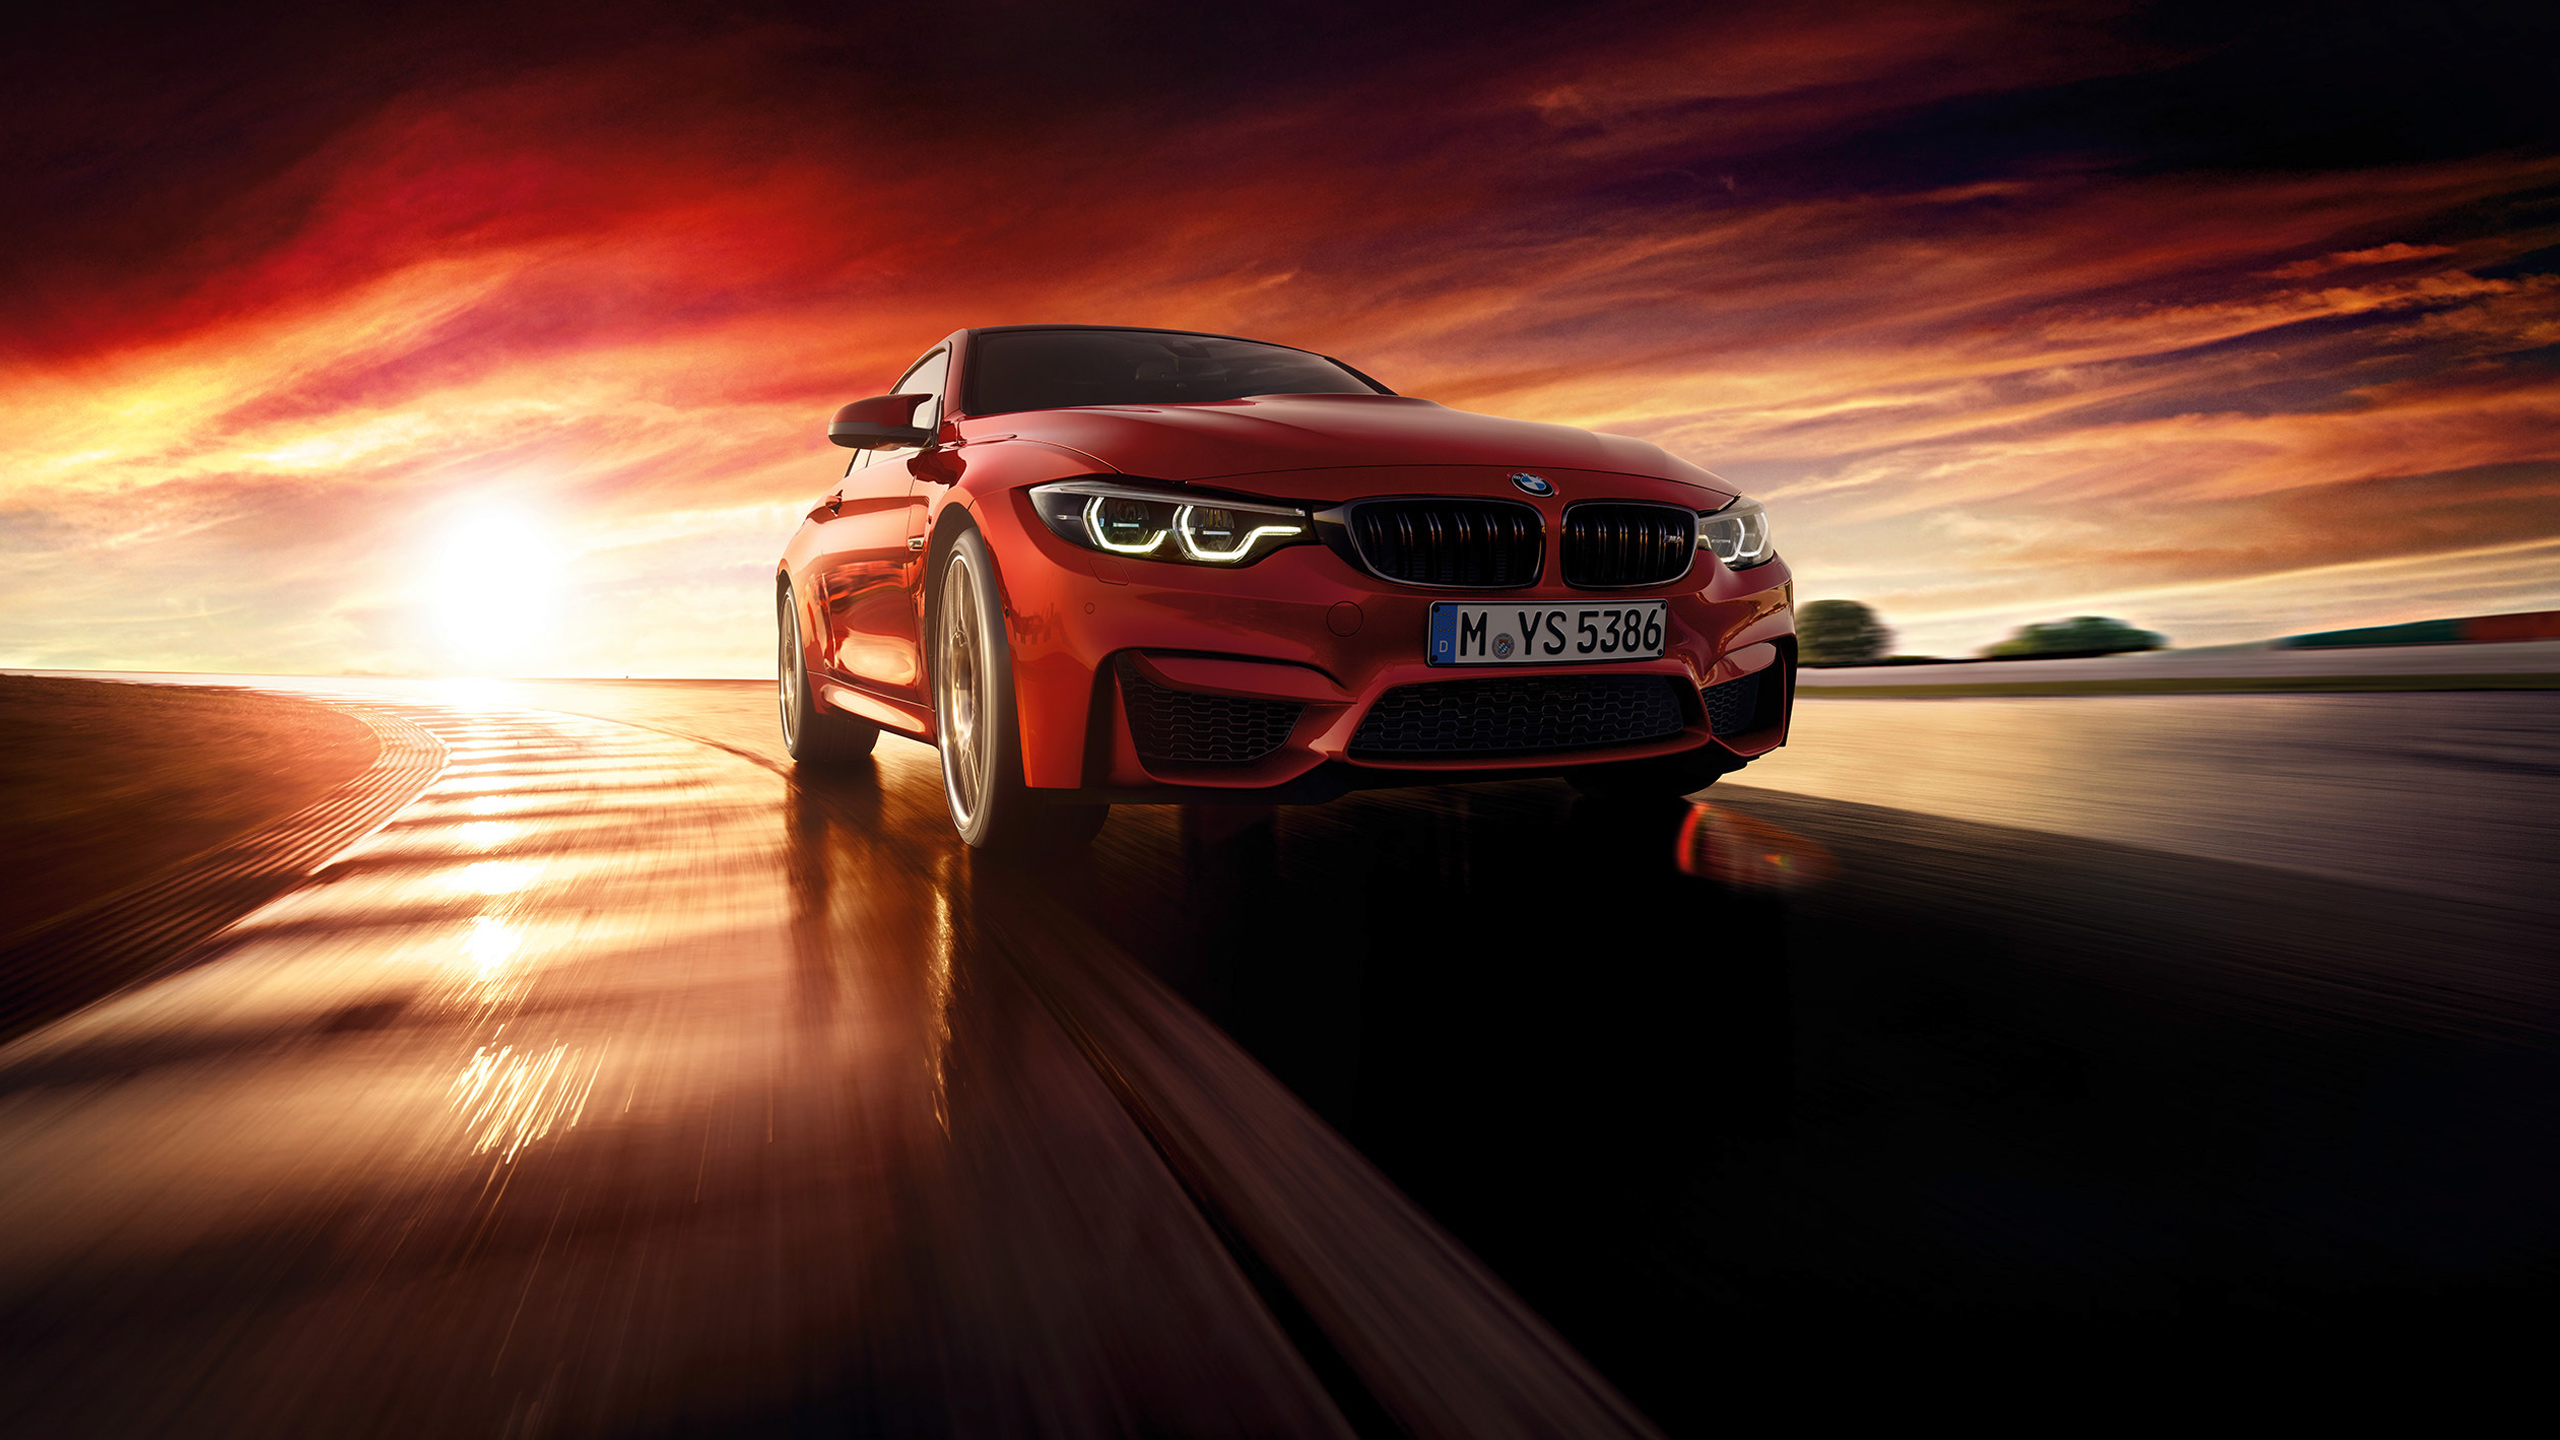 BMW M4 Coupe 2017 4 Wallpaper   HD Car Wallpapers   ID #8080